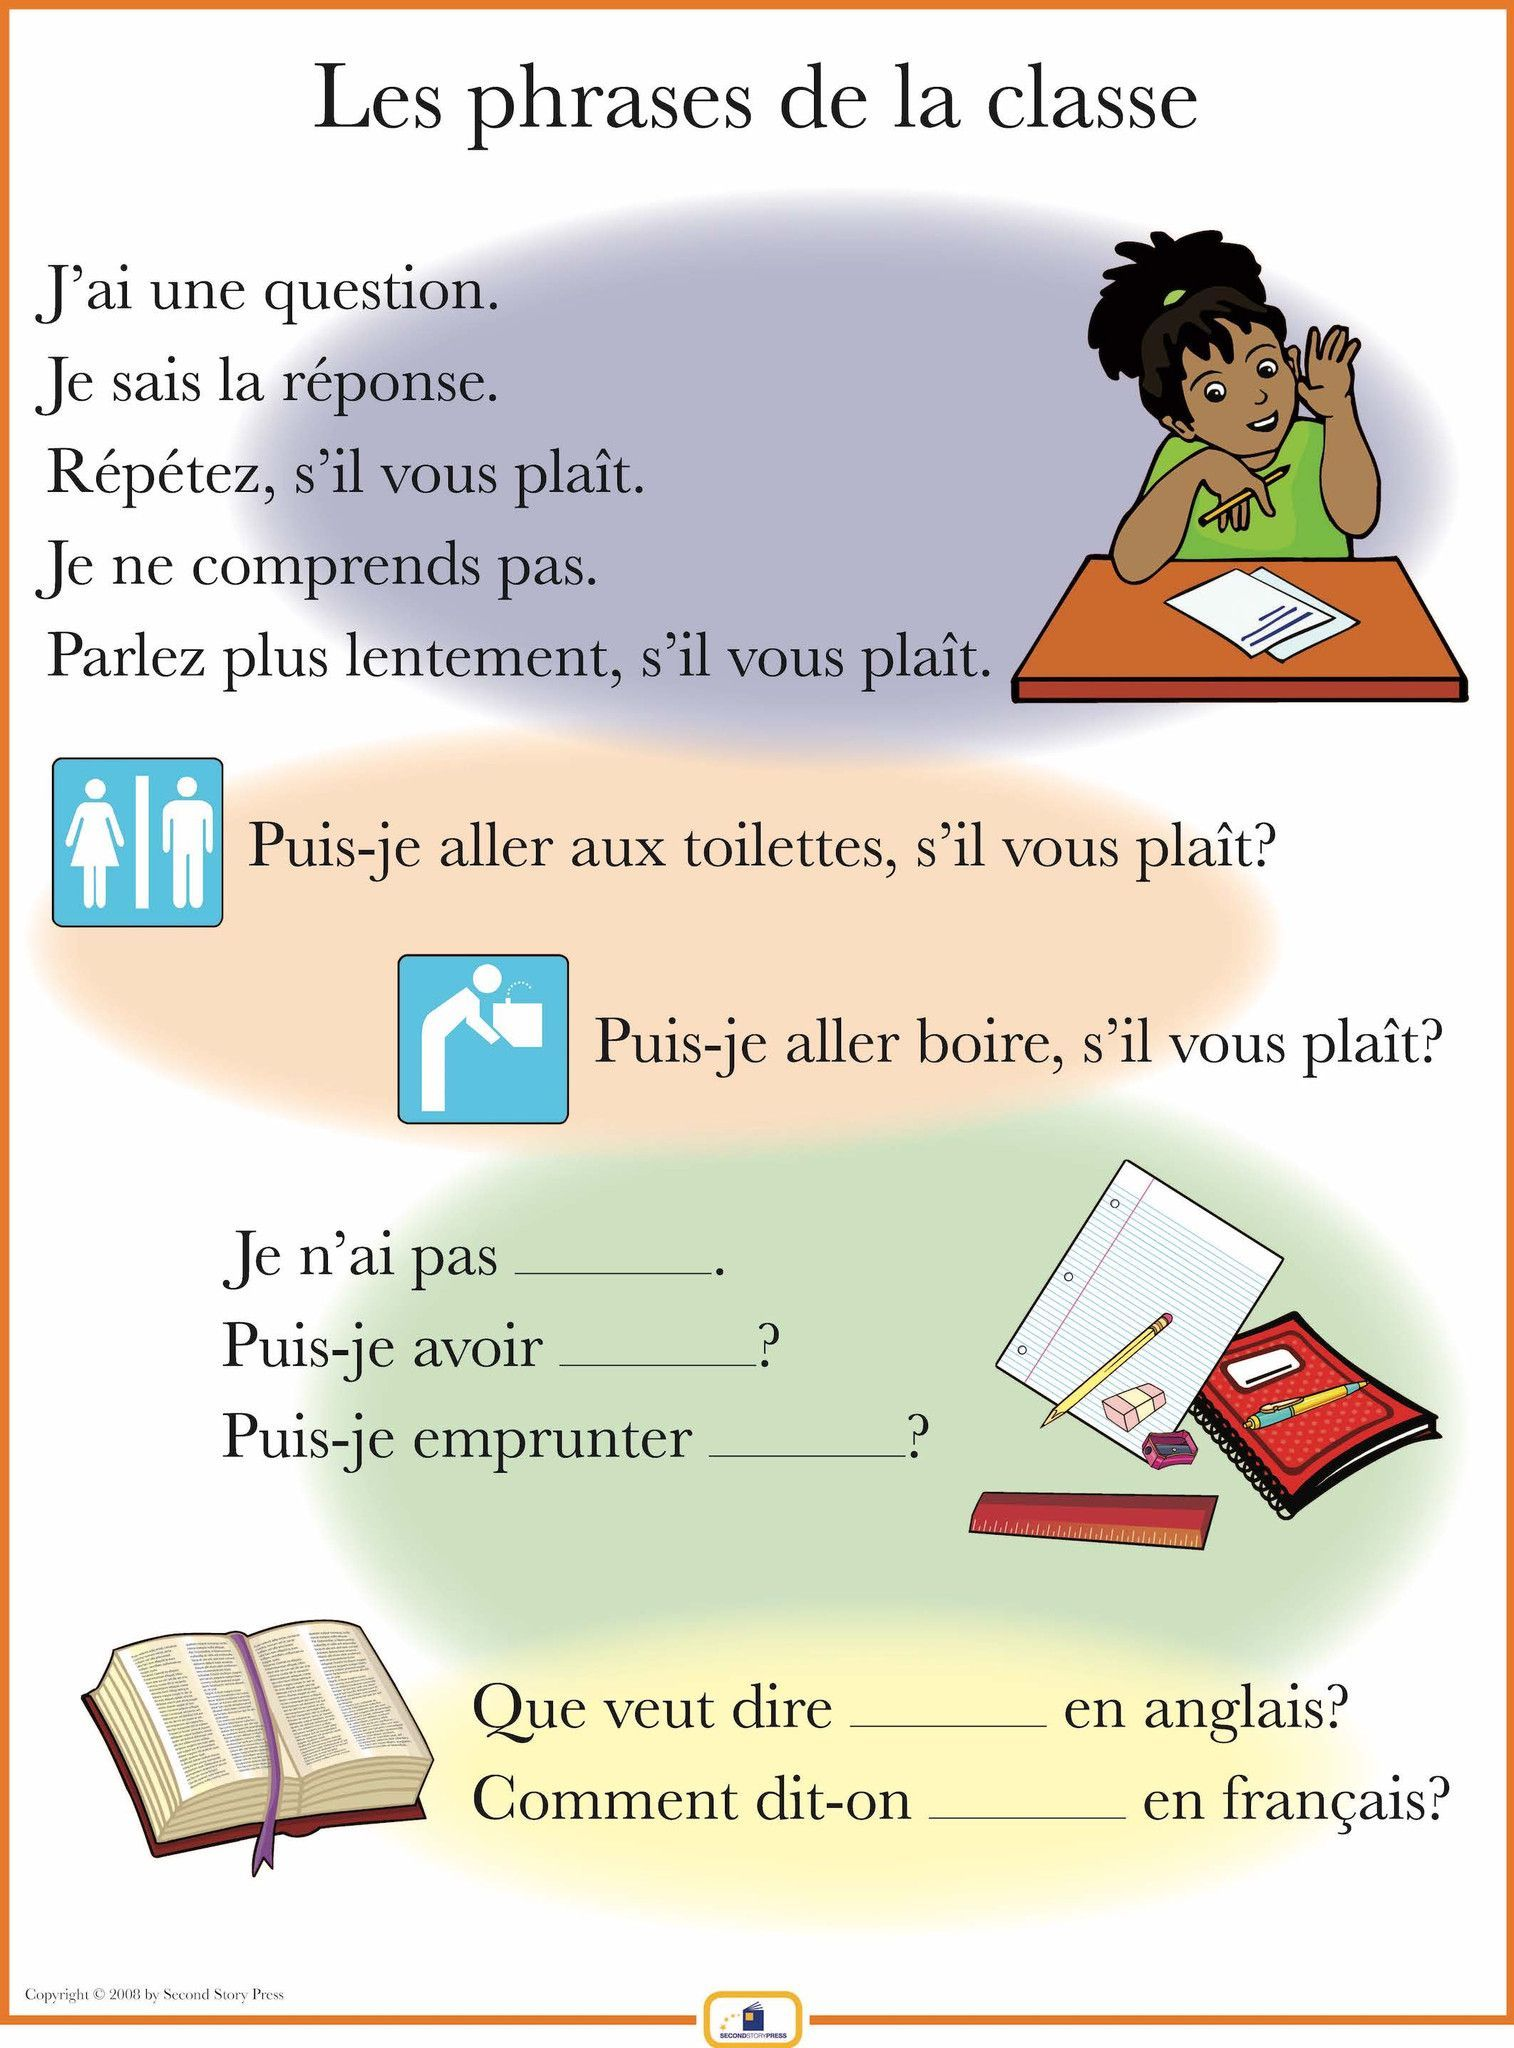 French Phrases Poster